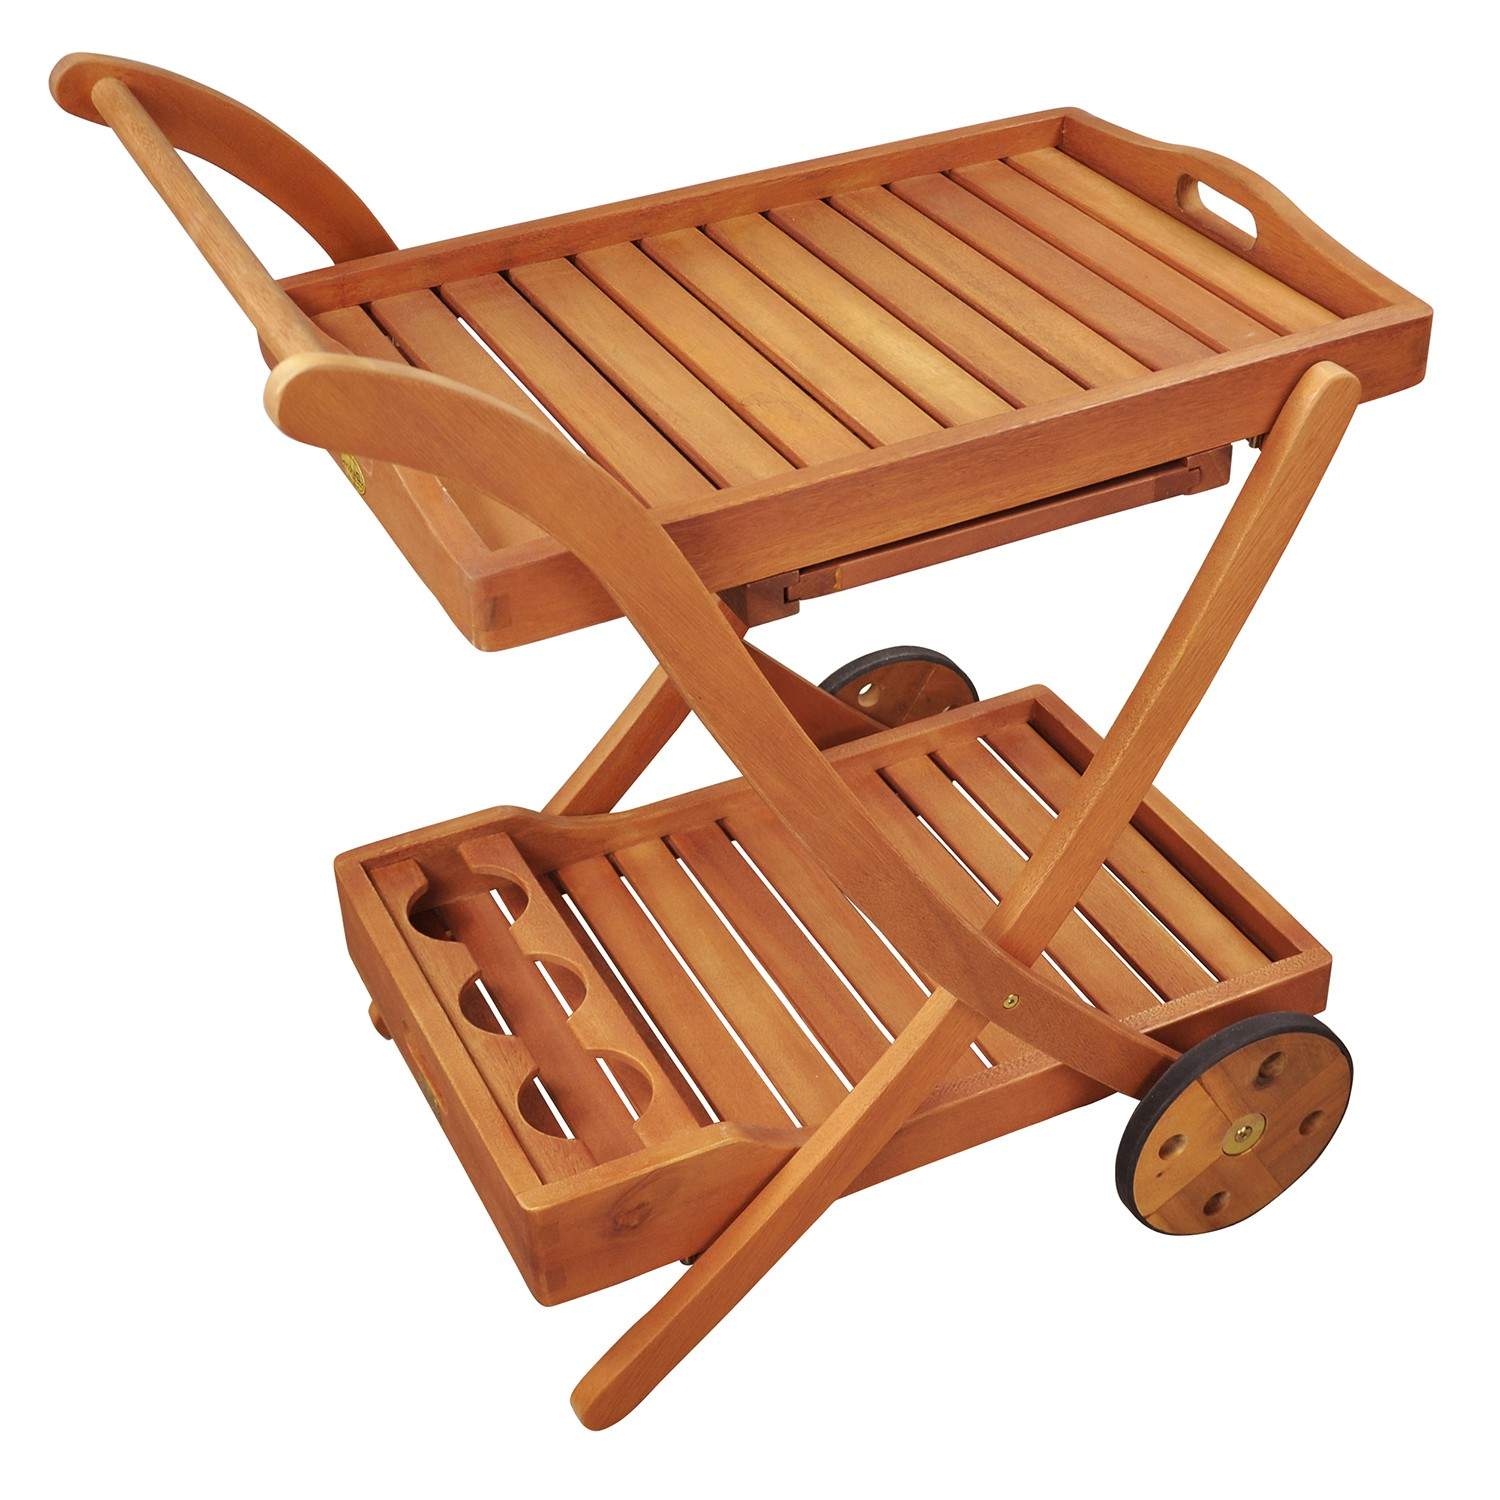 servierwagen beistellwagen trolley teewagen m tablett gartenm bel holz wie teak ebay. Black Bedroom Furniture Sets. Home Design Ideas